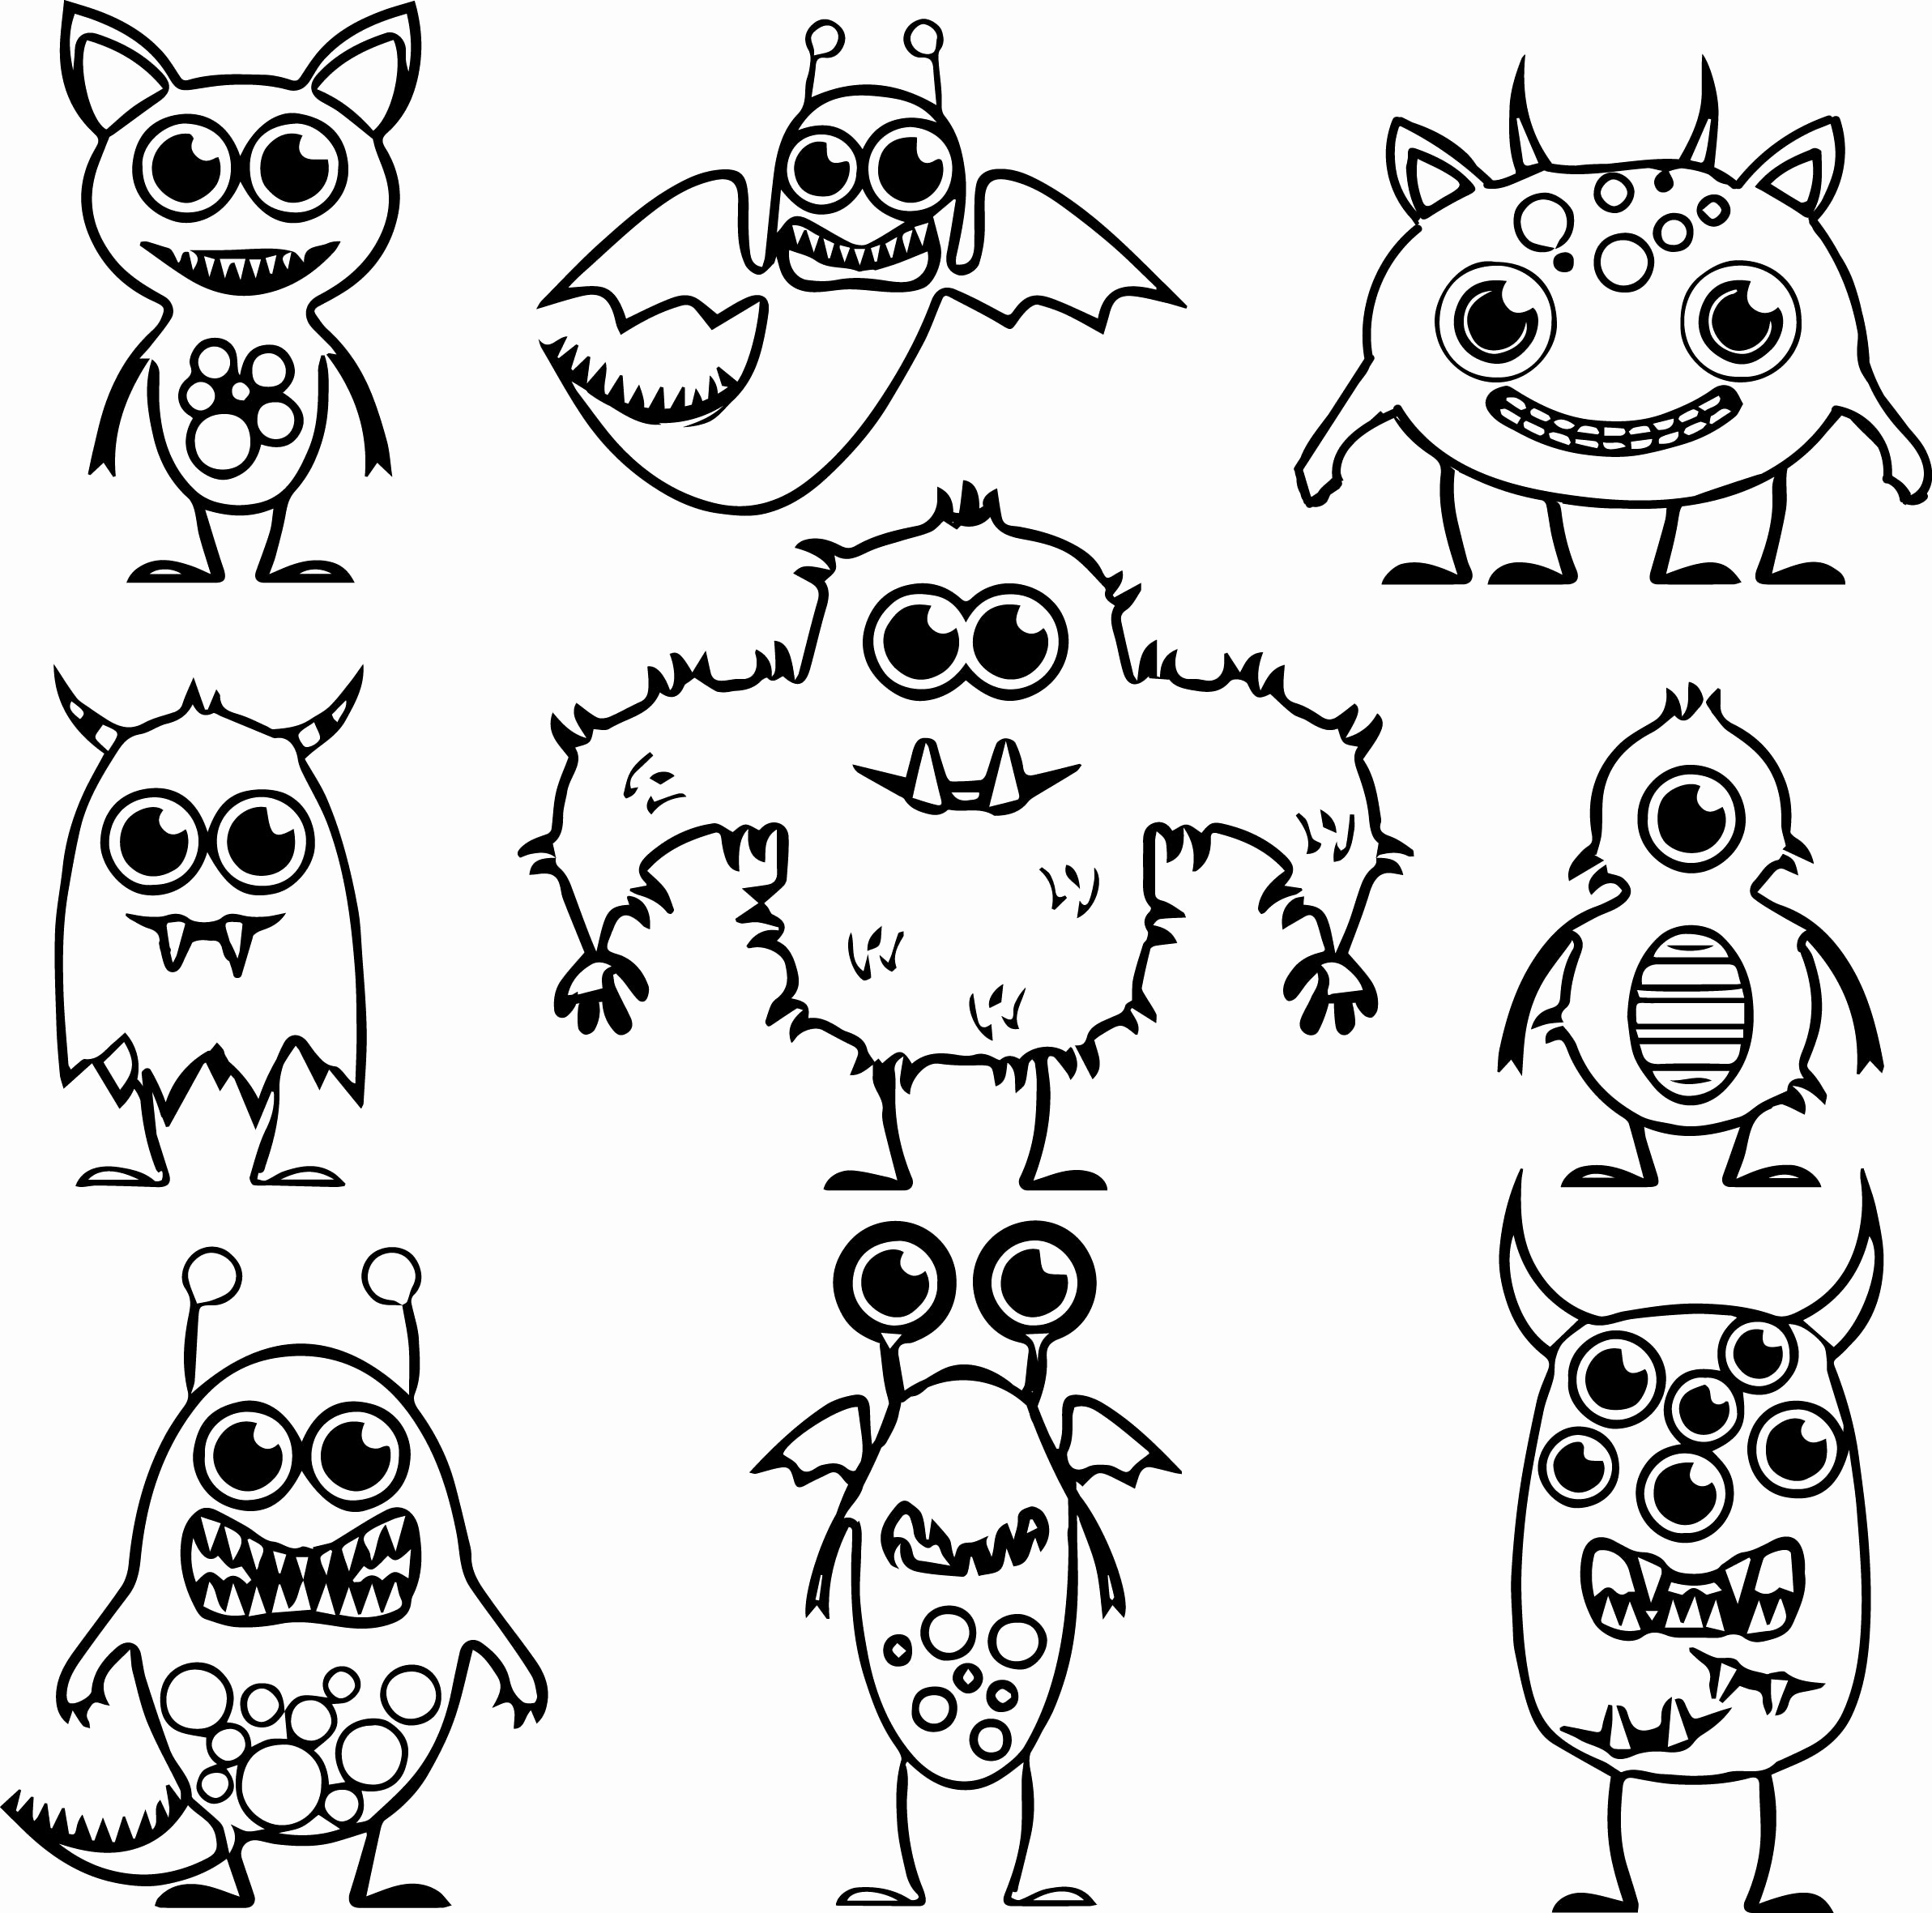 2385x2361 Alien Coloring Pages Space Ufo Books Thynedfgt Within